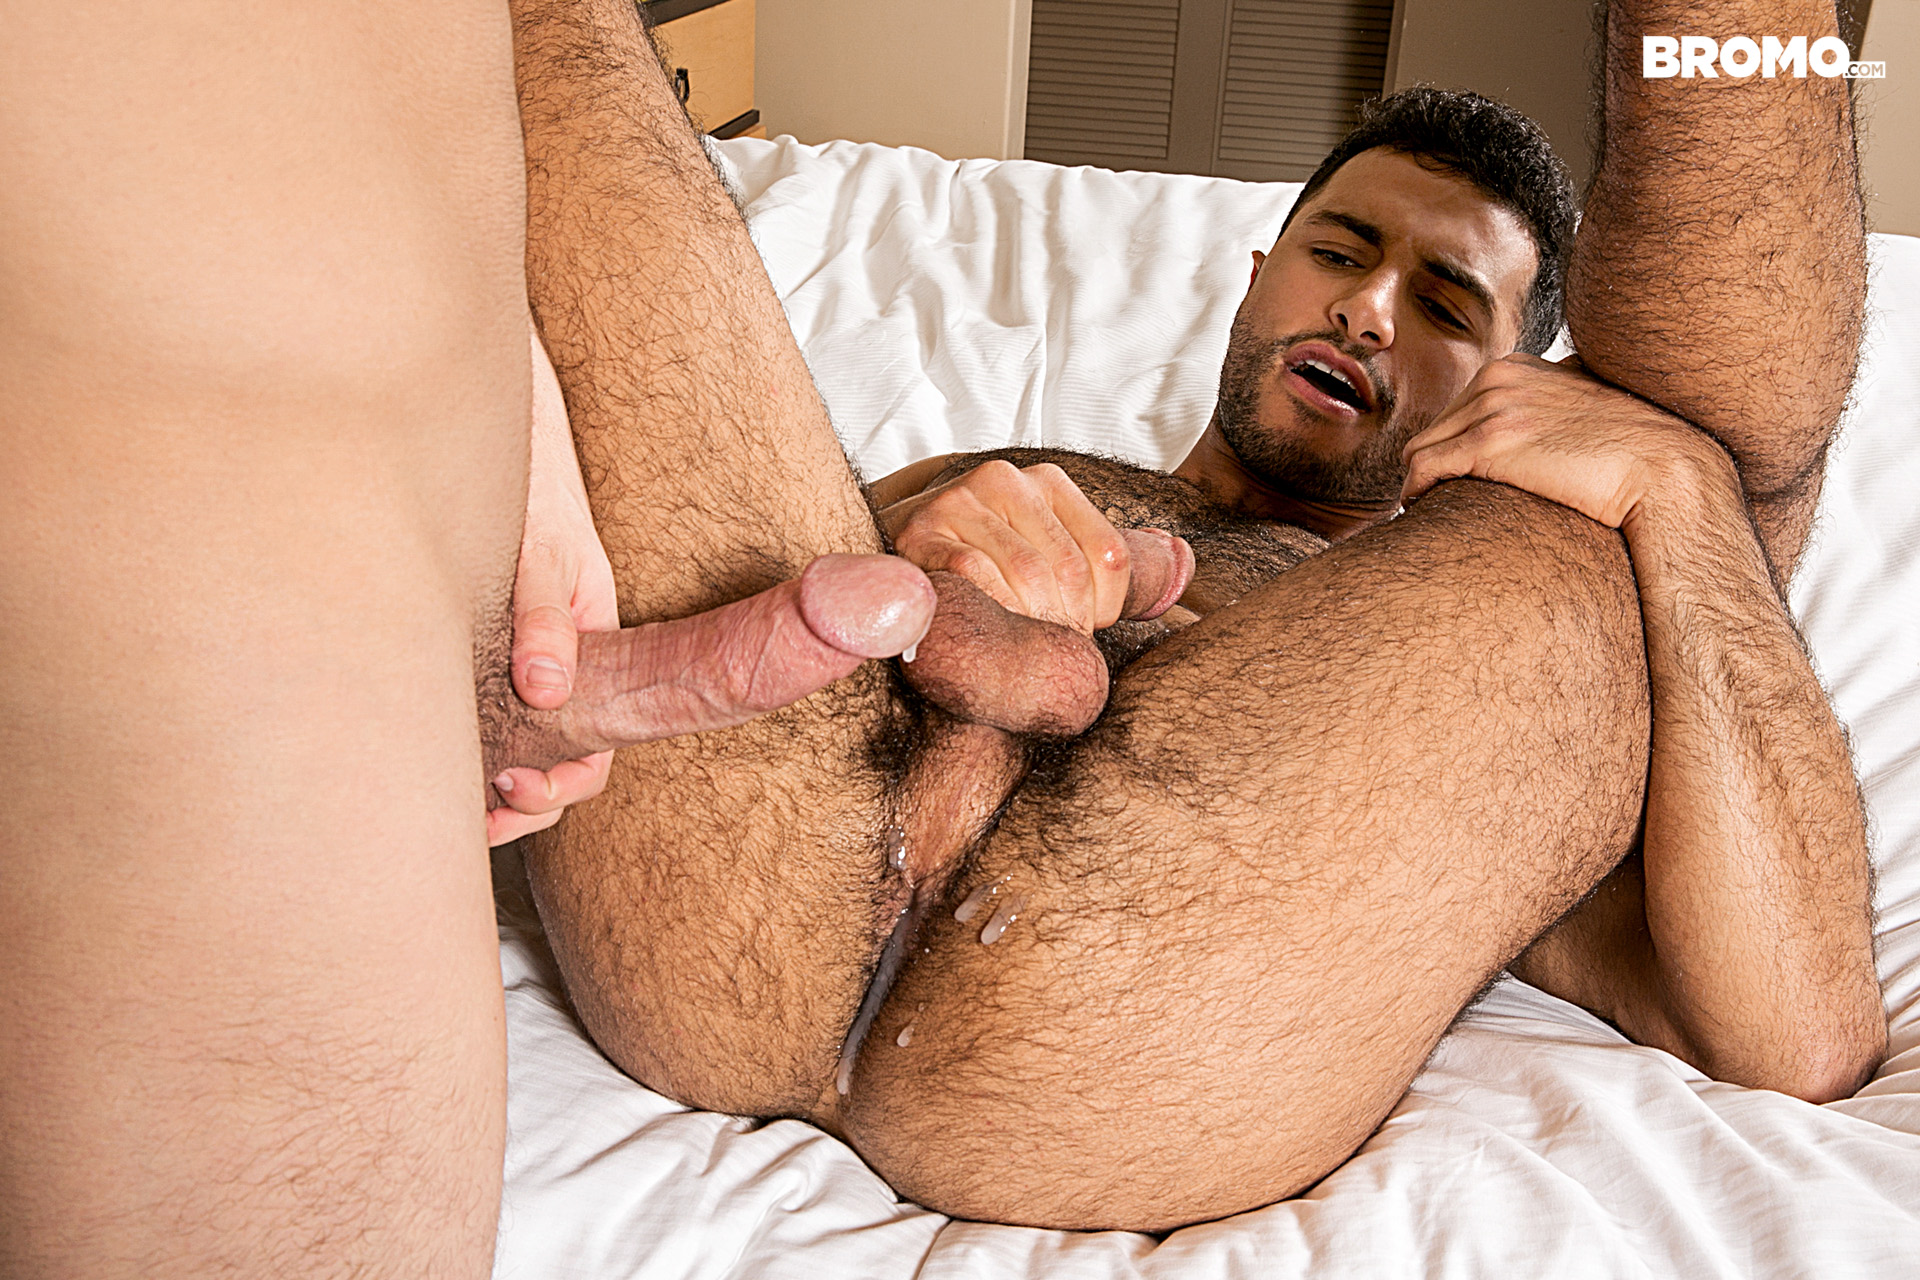 Gay anal cum shorts zaden pumps in and out 10